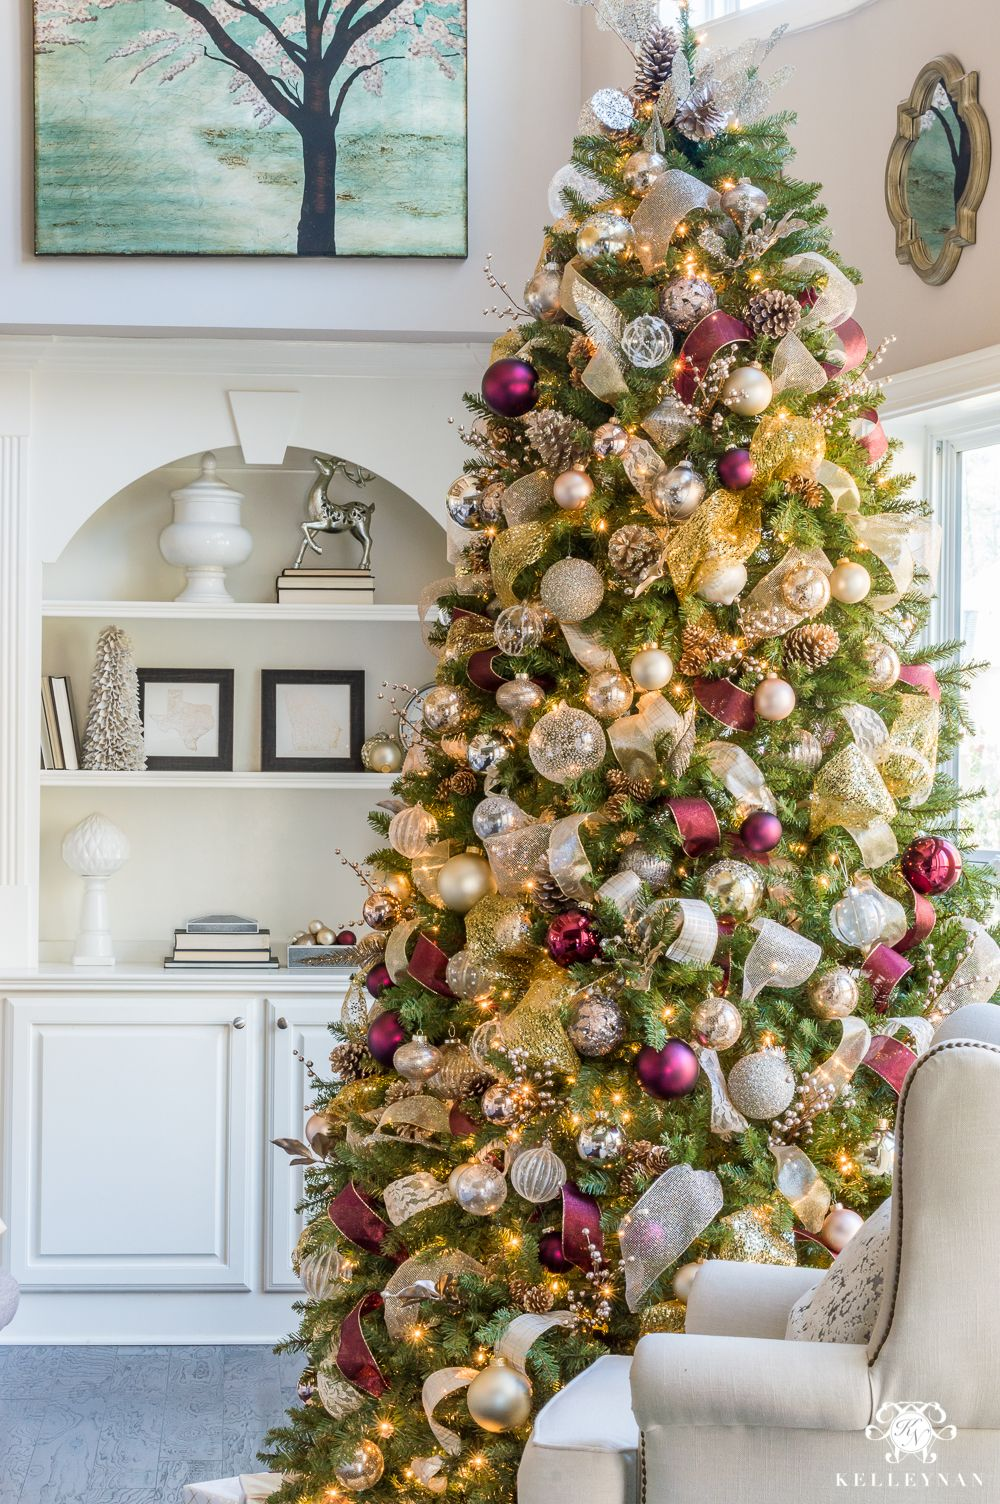 2017 Christmas Home Tour Champagne Wine And Other Christmas Color Schemes Kelley Nan Christmas Colour Schemes Elegant Christmas Trees Red And Gold Christmas Tree